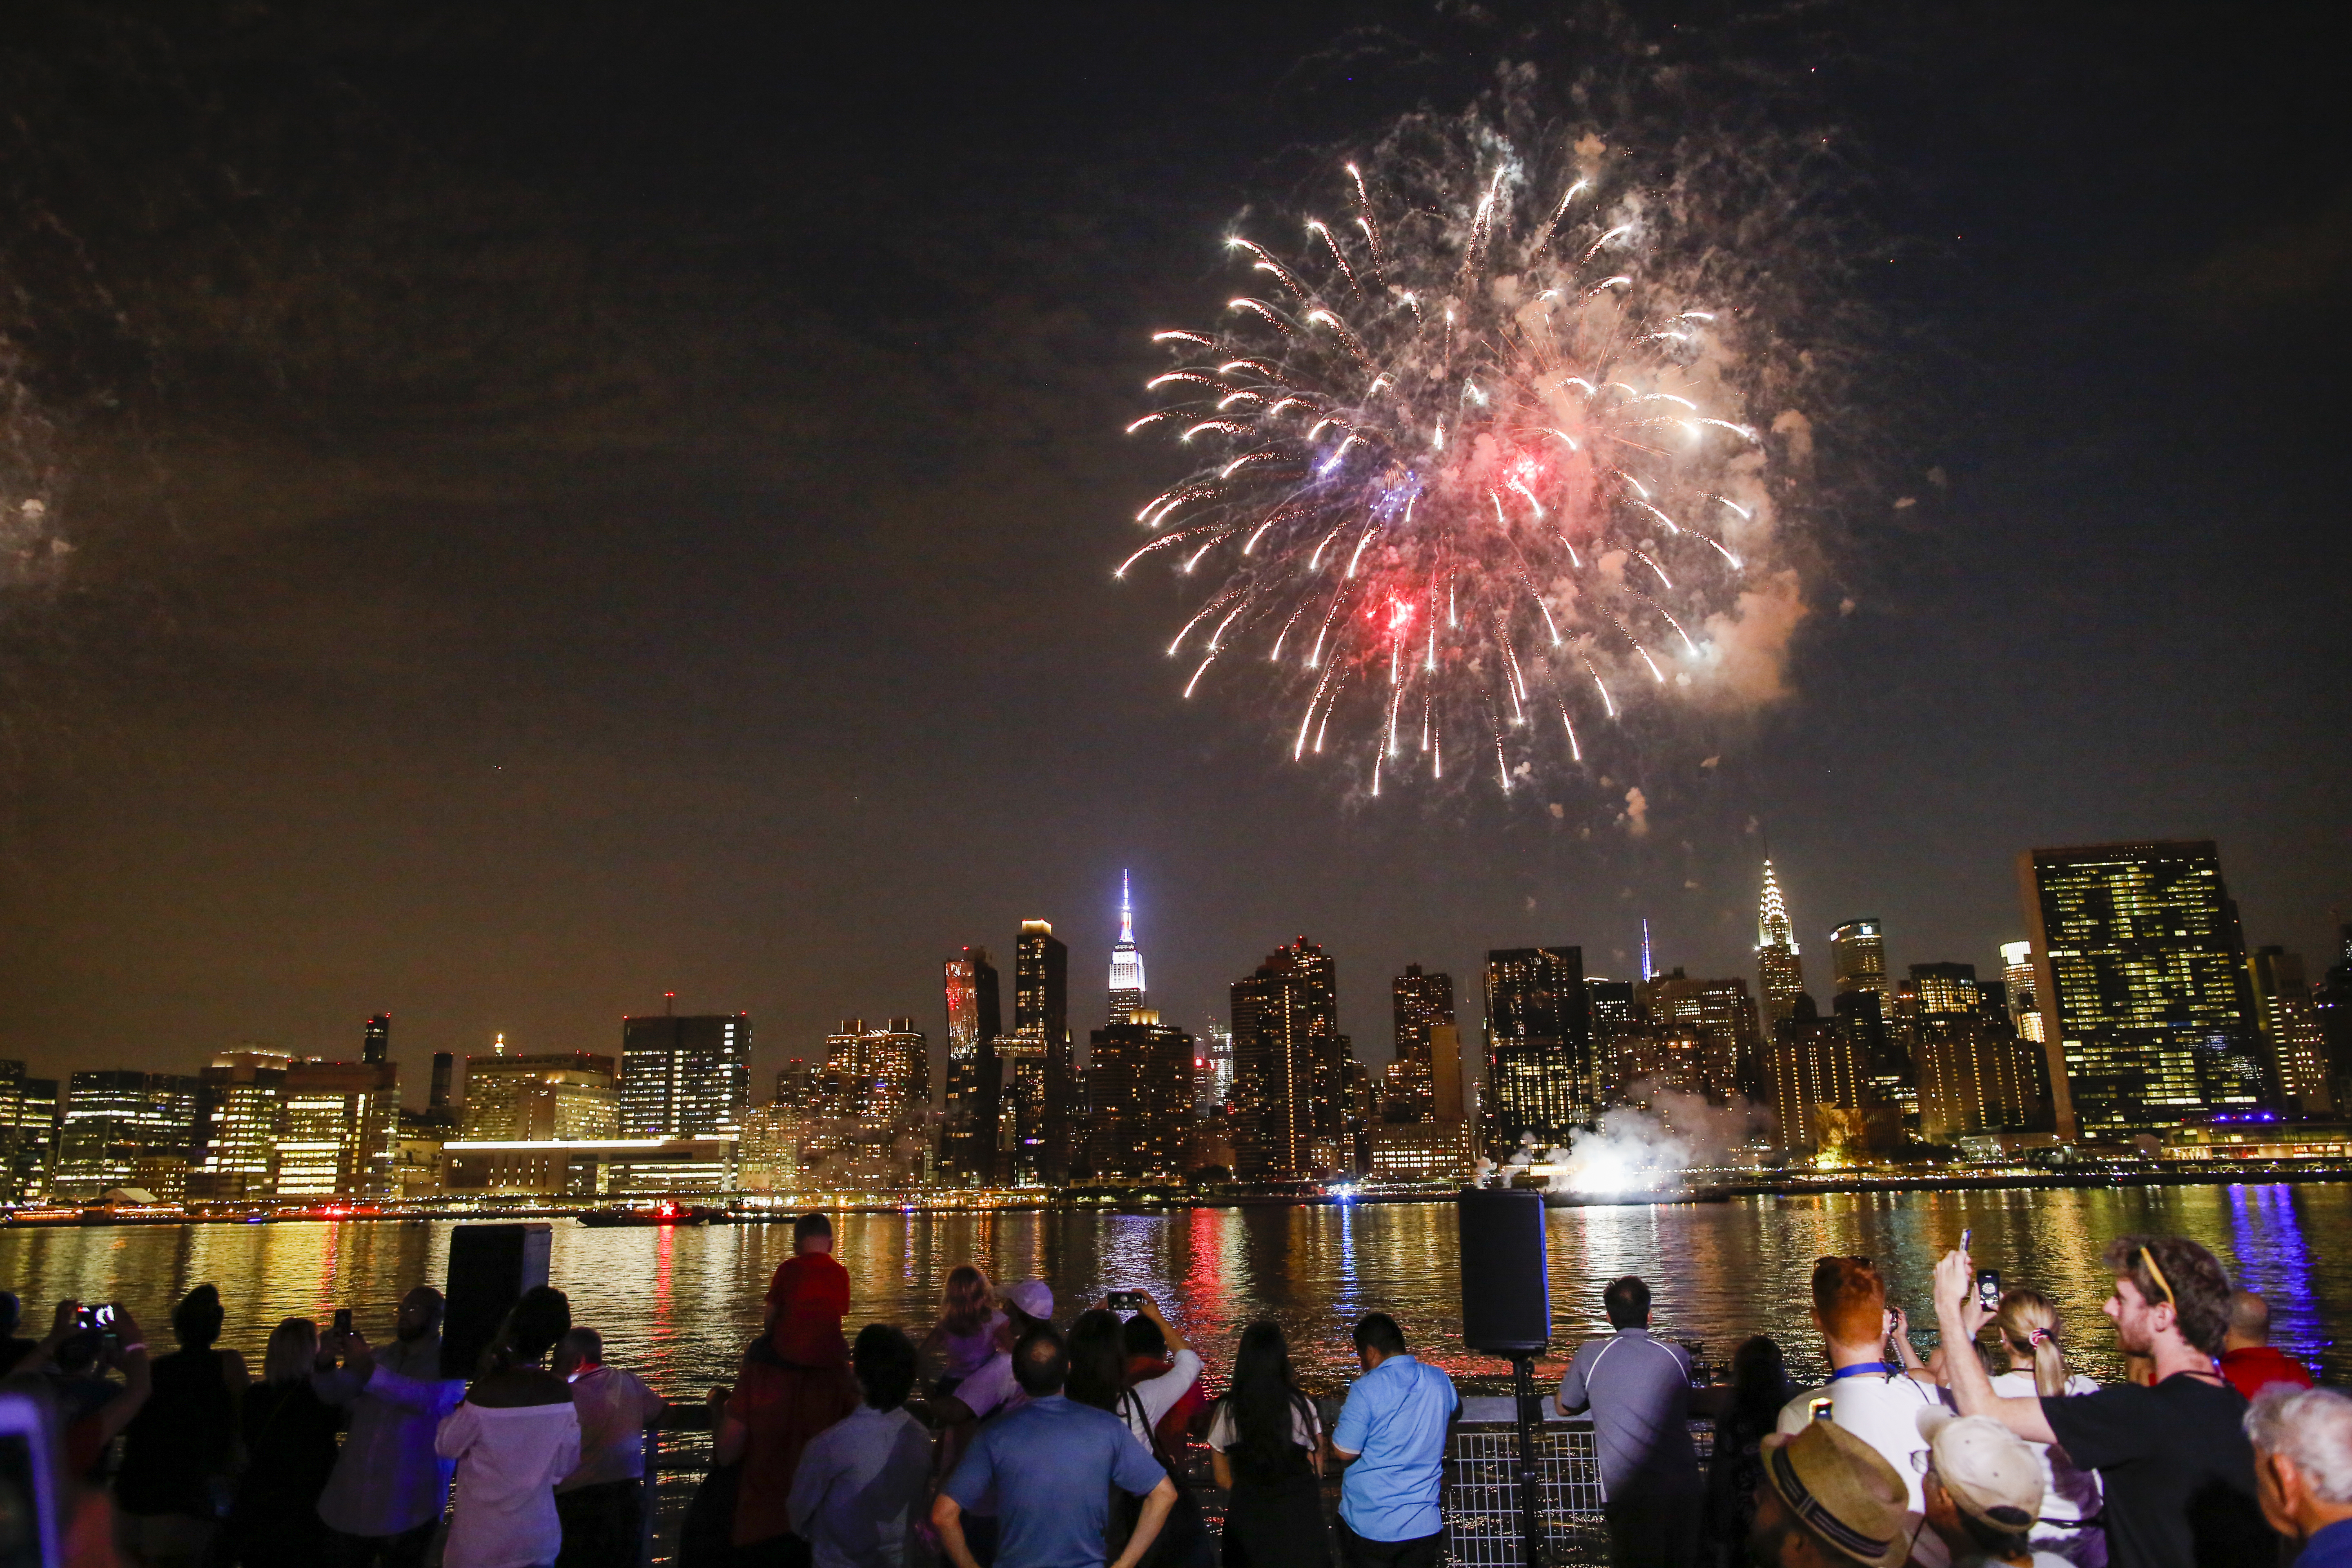 People stand at a waterfront watching a bright colorful fireworks display over the night skyline of New York City.